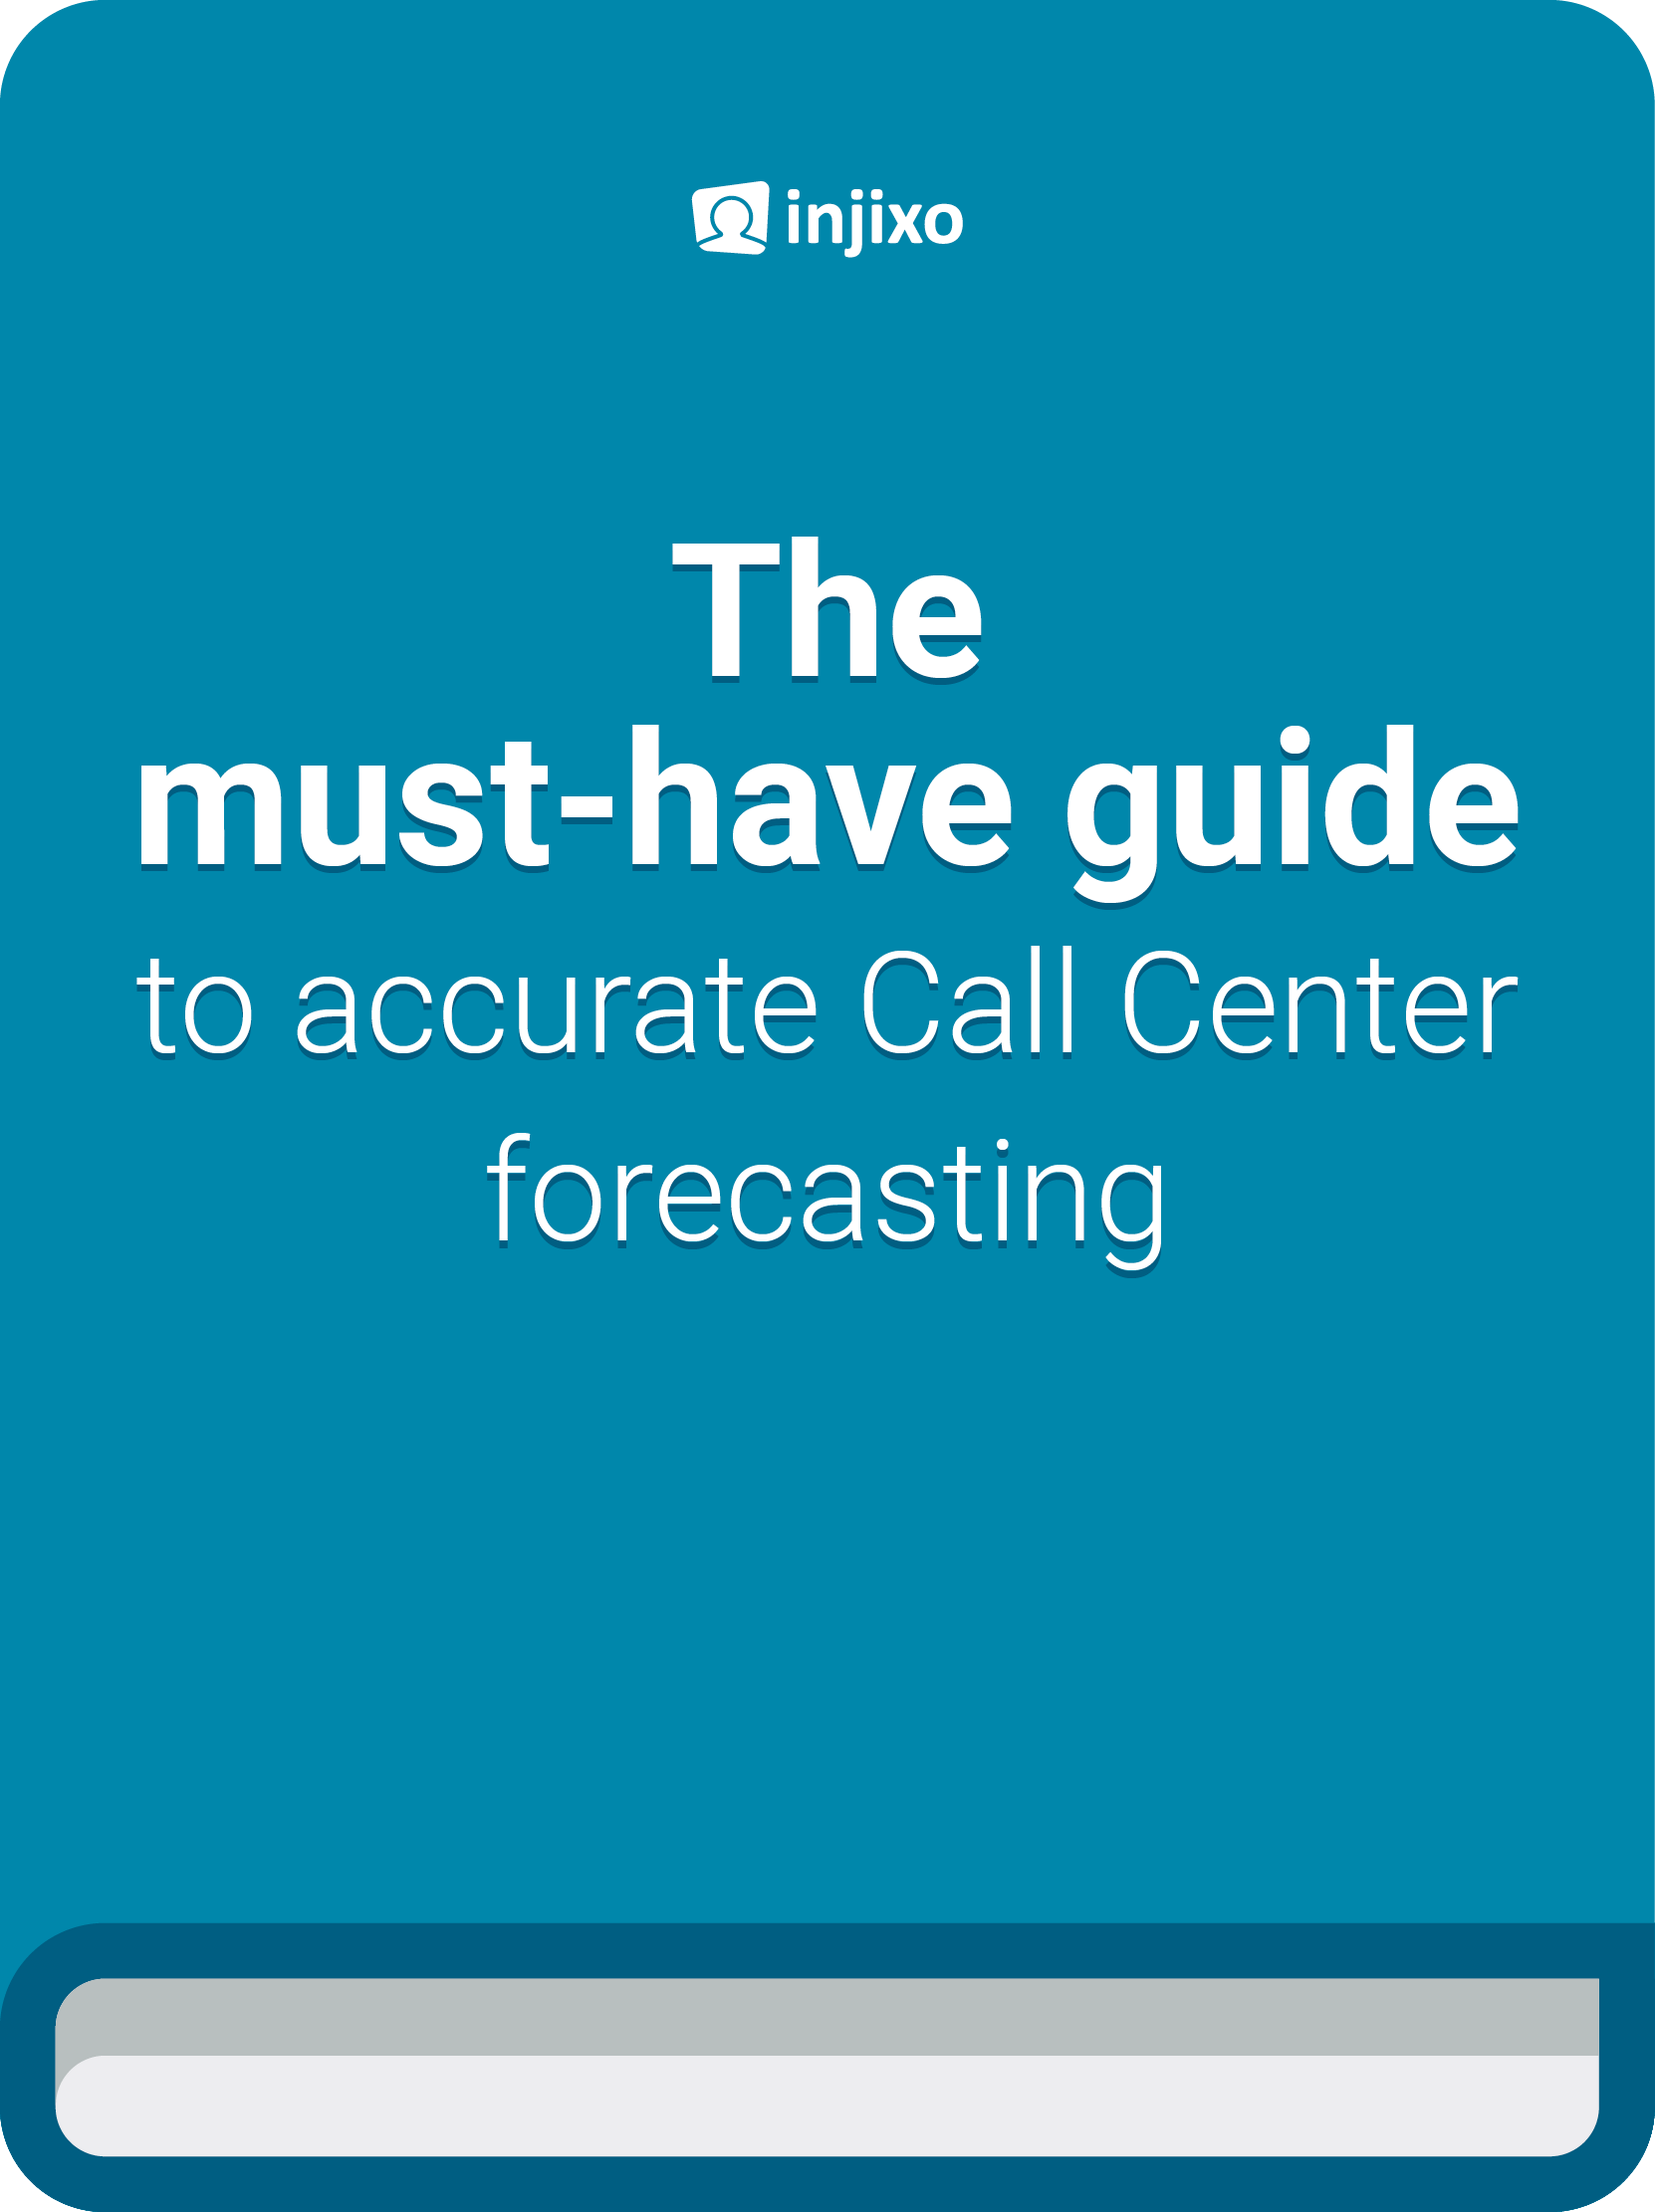 injixo-ebook-the-must-have-guide-to-accurate-call-center-forecasting-cover.png